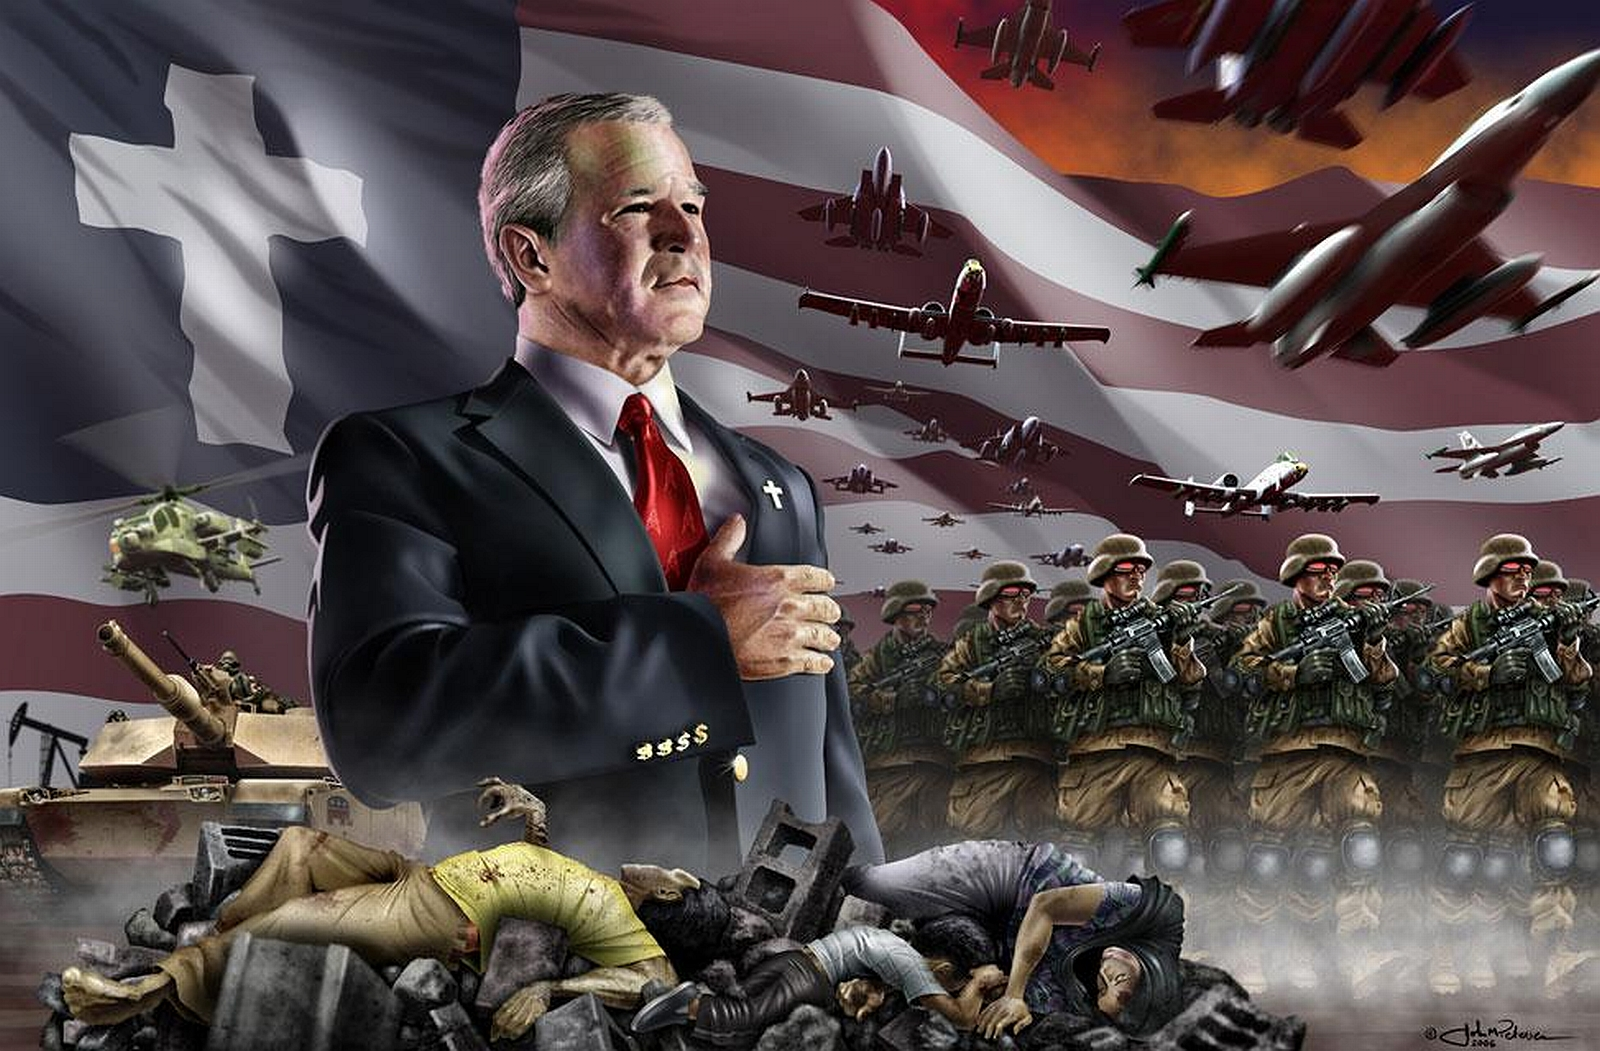 American expansionism cold war movies